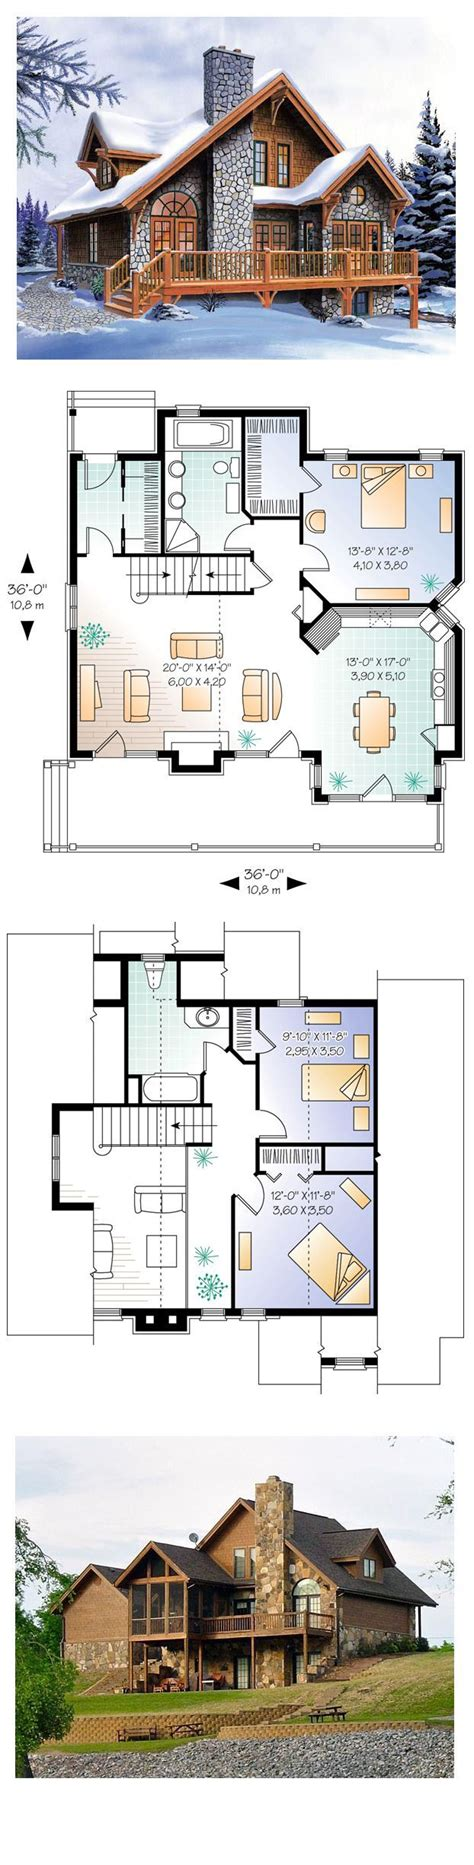 hillside floor plans hillside house plan 65246 total living area 1625 sq ft